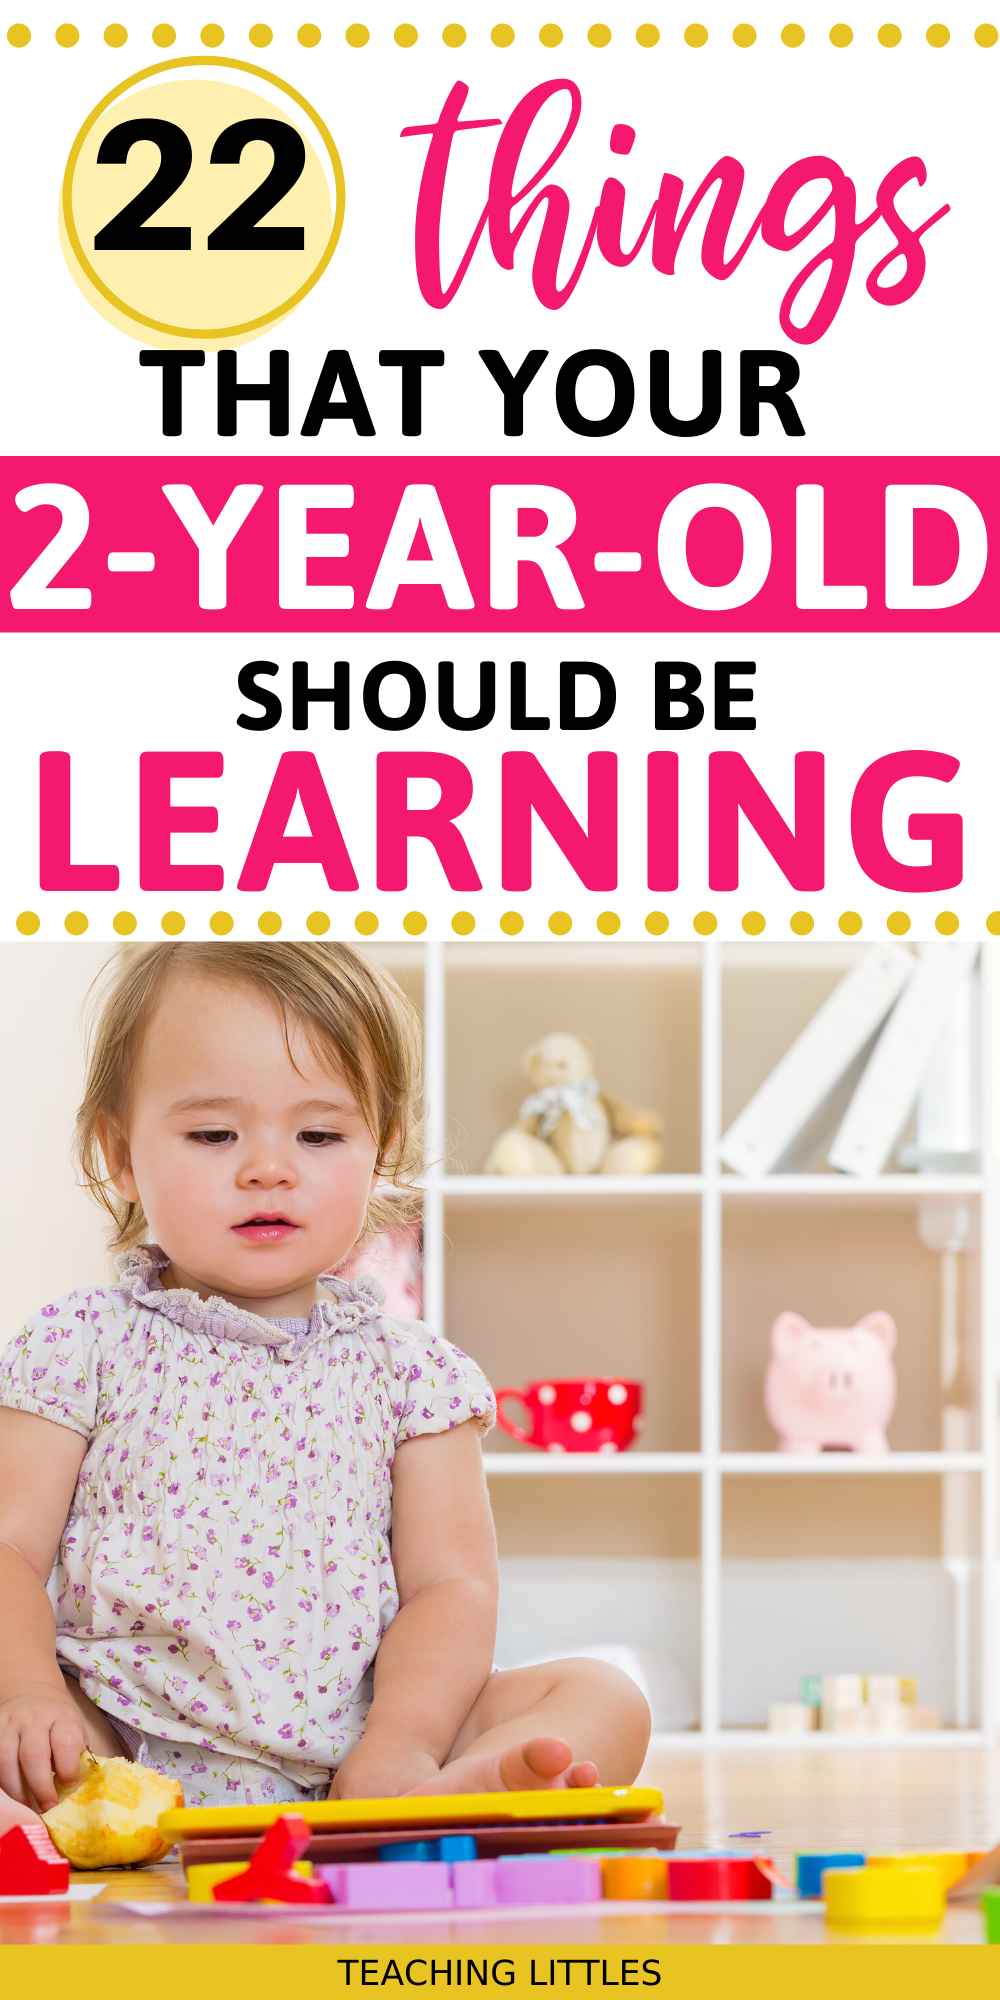 Here are some great ideas about things to teach your 2 year old. Most skills can be achieved through these learning activities for two year olds